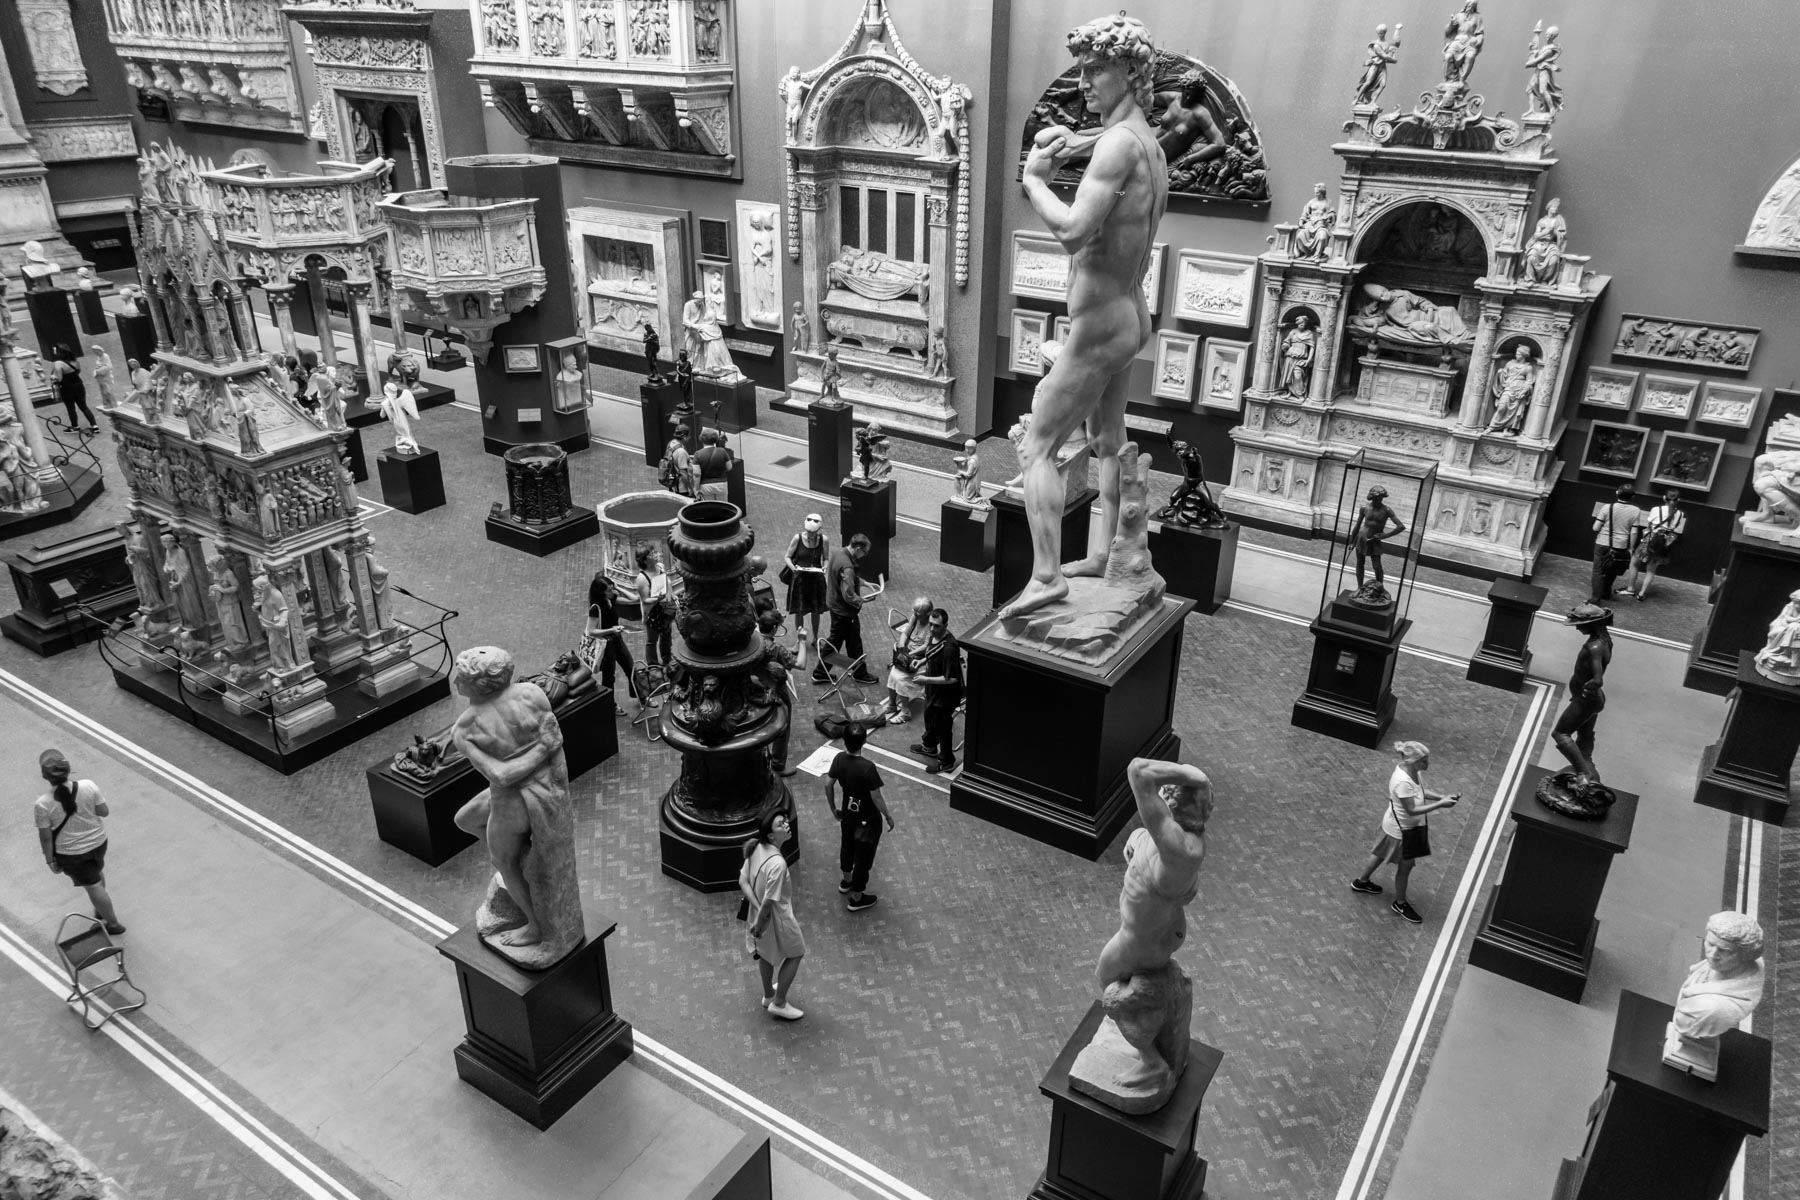 v_and_a_london_201706-52